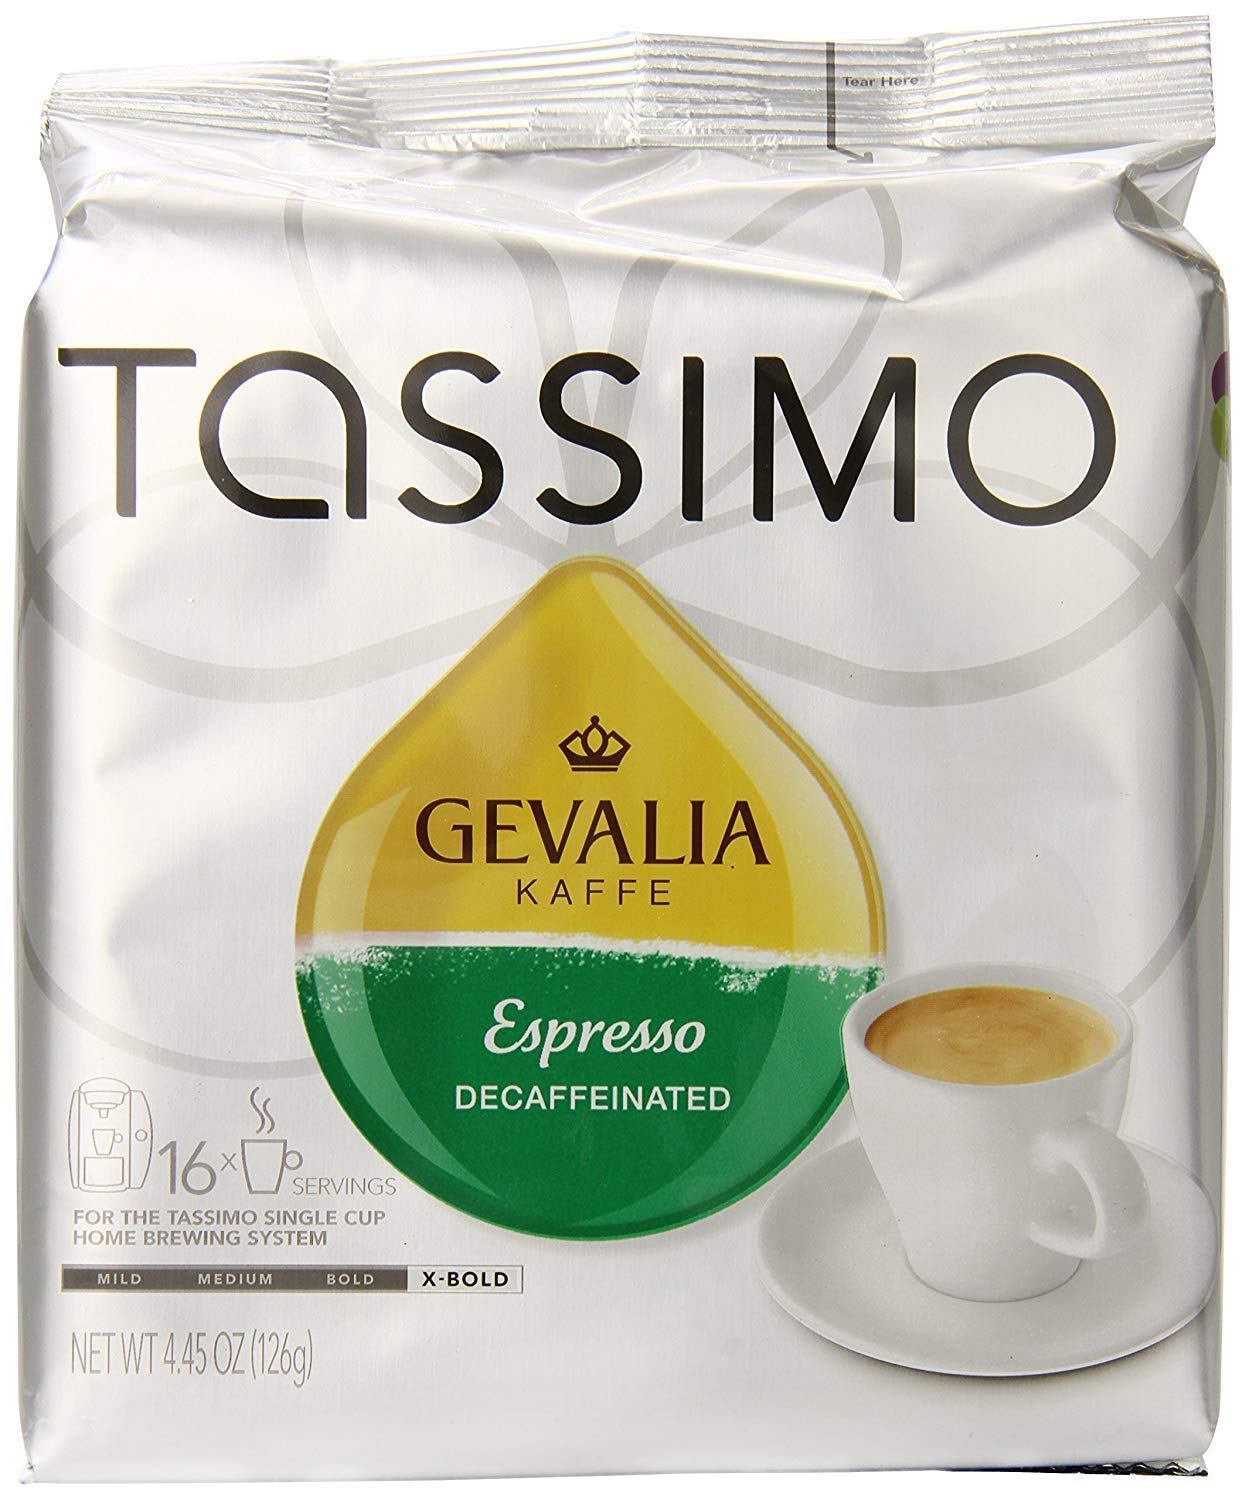 Tassimo Gevalia Decaf Espresso Extra Bold Roast Coffee T Discs, 16 Count (Pack of 5)